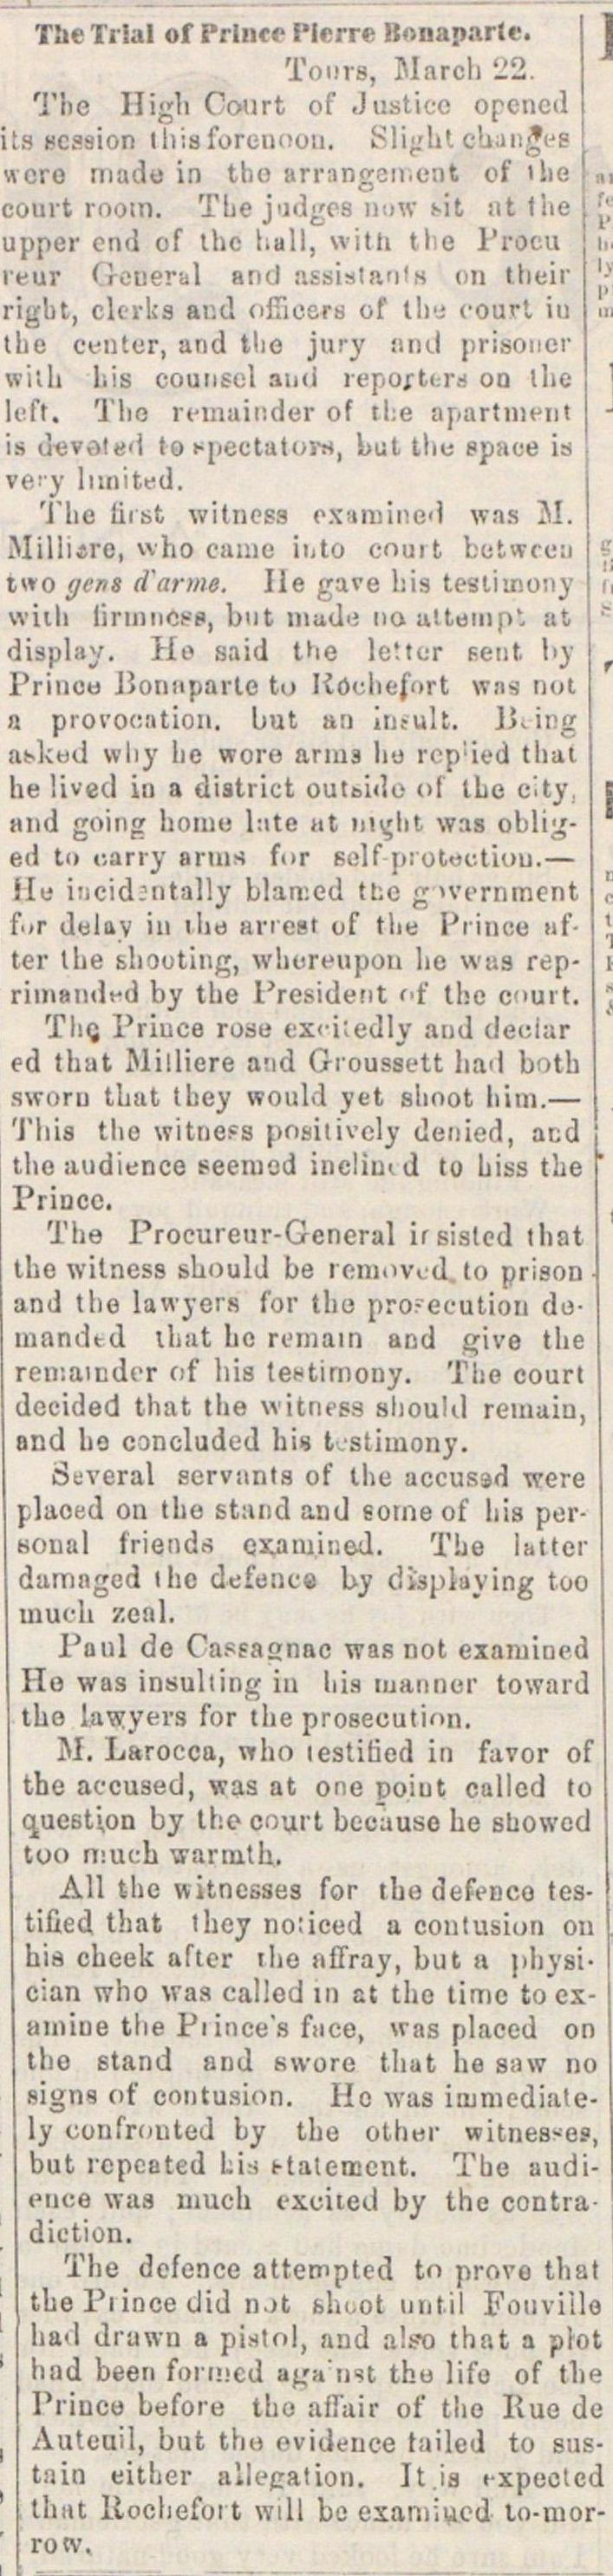 The Trial Of Prince Pierre Bonaparte image